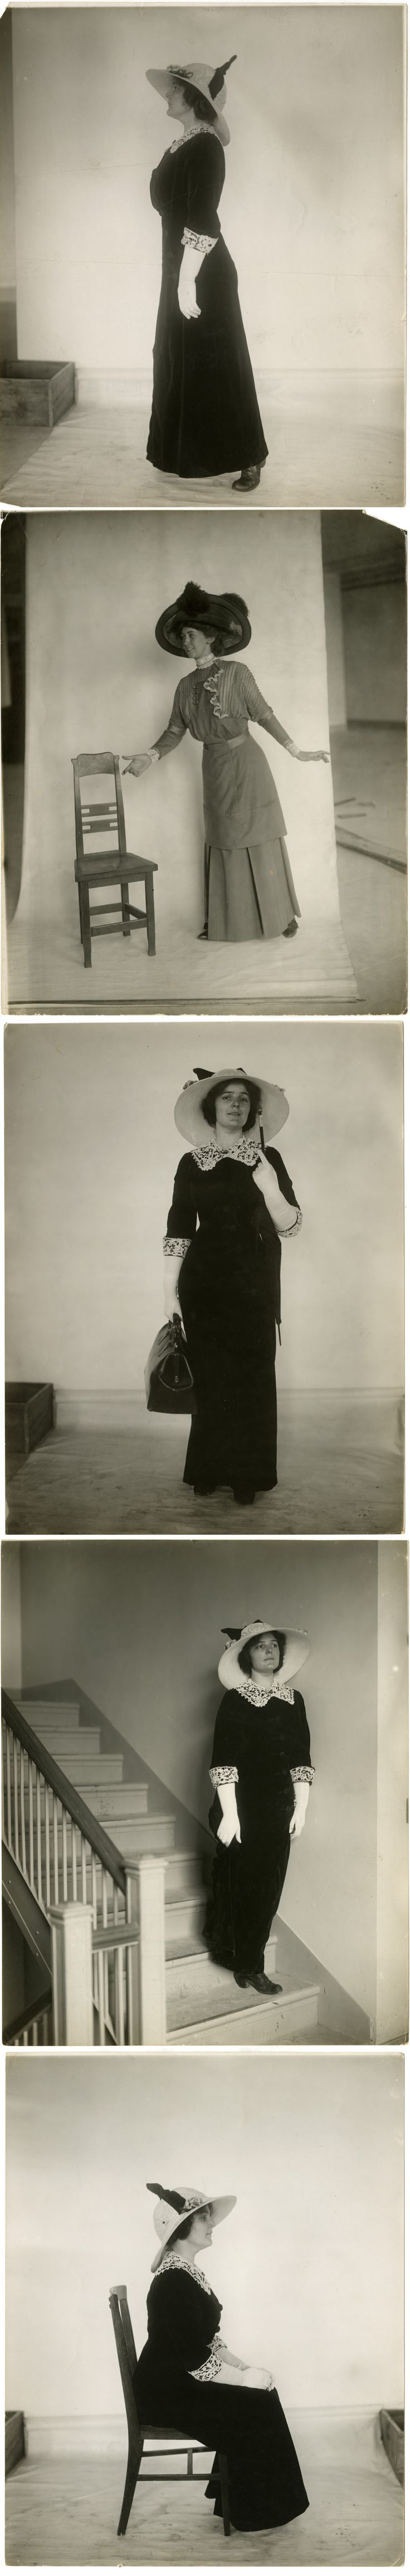 """December 17, 1892: The first issue of Vogue was published.  Instructional fashion photographs, by Jessie Tarbox Beals, ca. 1905-1918,""""The right way to: stand when walking; offer a seat; carry bag & umbrella; come down the stairs; sit in a chair,"""" PR 004, NYHS image numbers 82231d-82235d."""